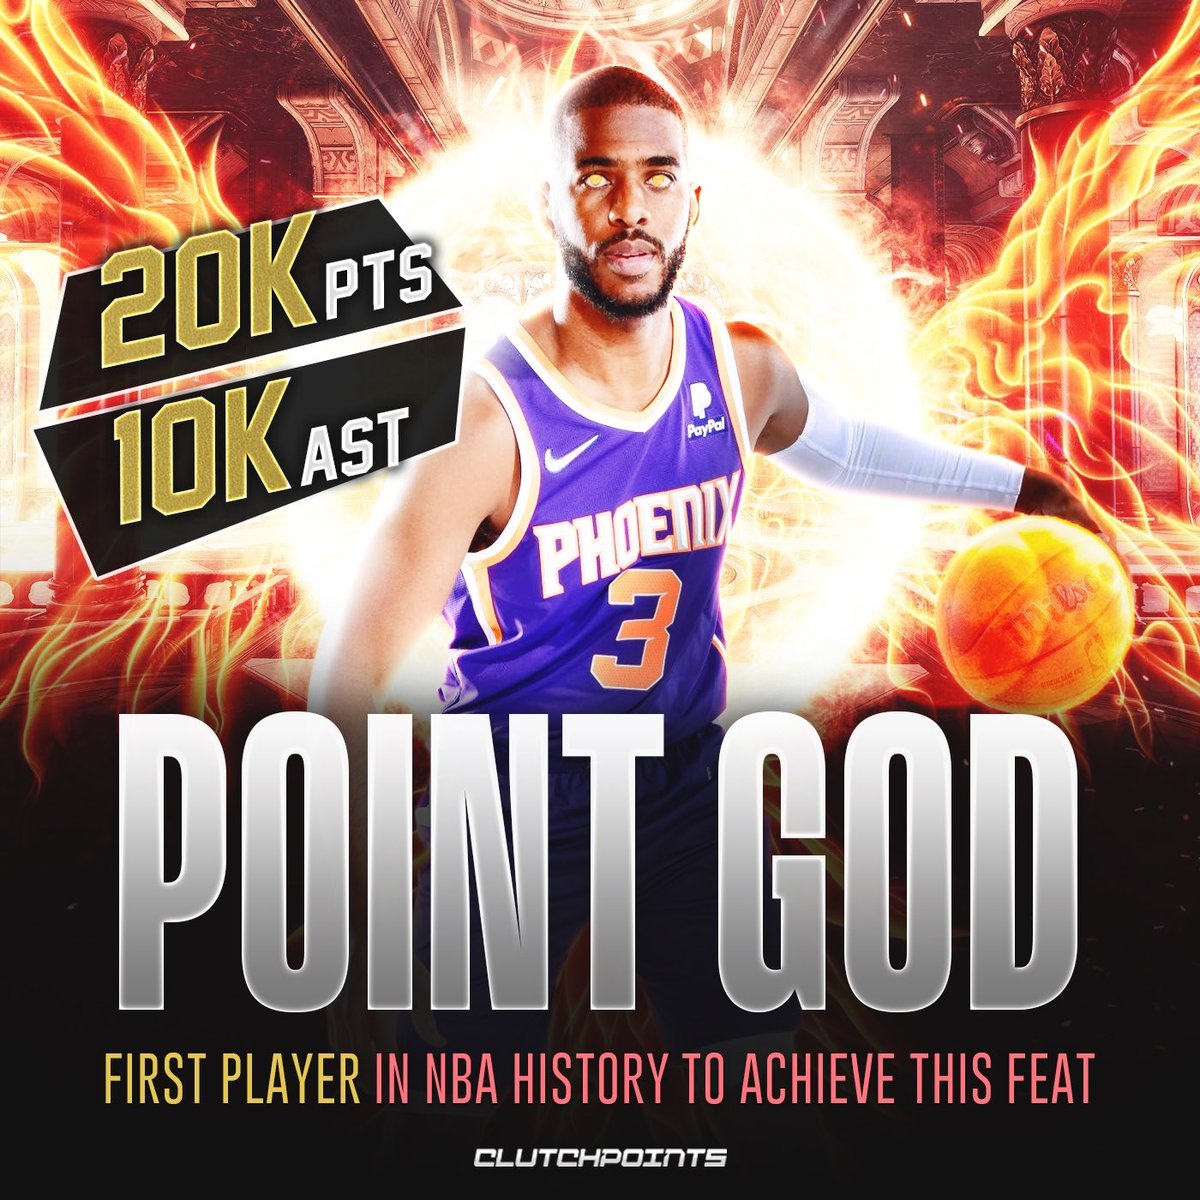 Chris Paul is really showing us why he's dubbed as the Point God 💯 He is now the 47th player to reach 20,000 PTS and the 5th on the all-time assists list with 10,299 AST 🔥